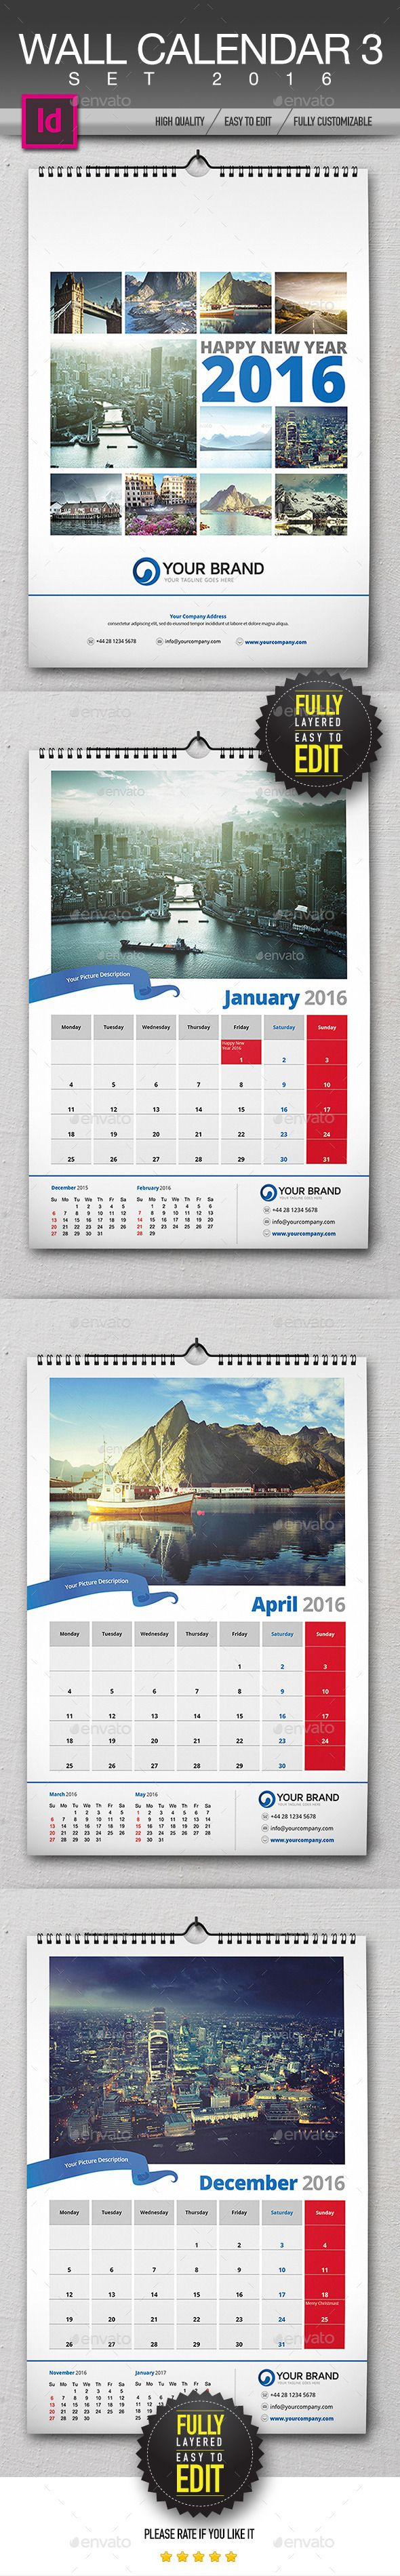 Wall Calendar 2016 Template InDesign INDD #design Download: http://graphicriver.net/item/wall-calendar-2016/13122707?ref=ksioks